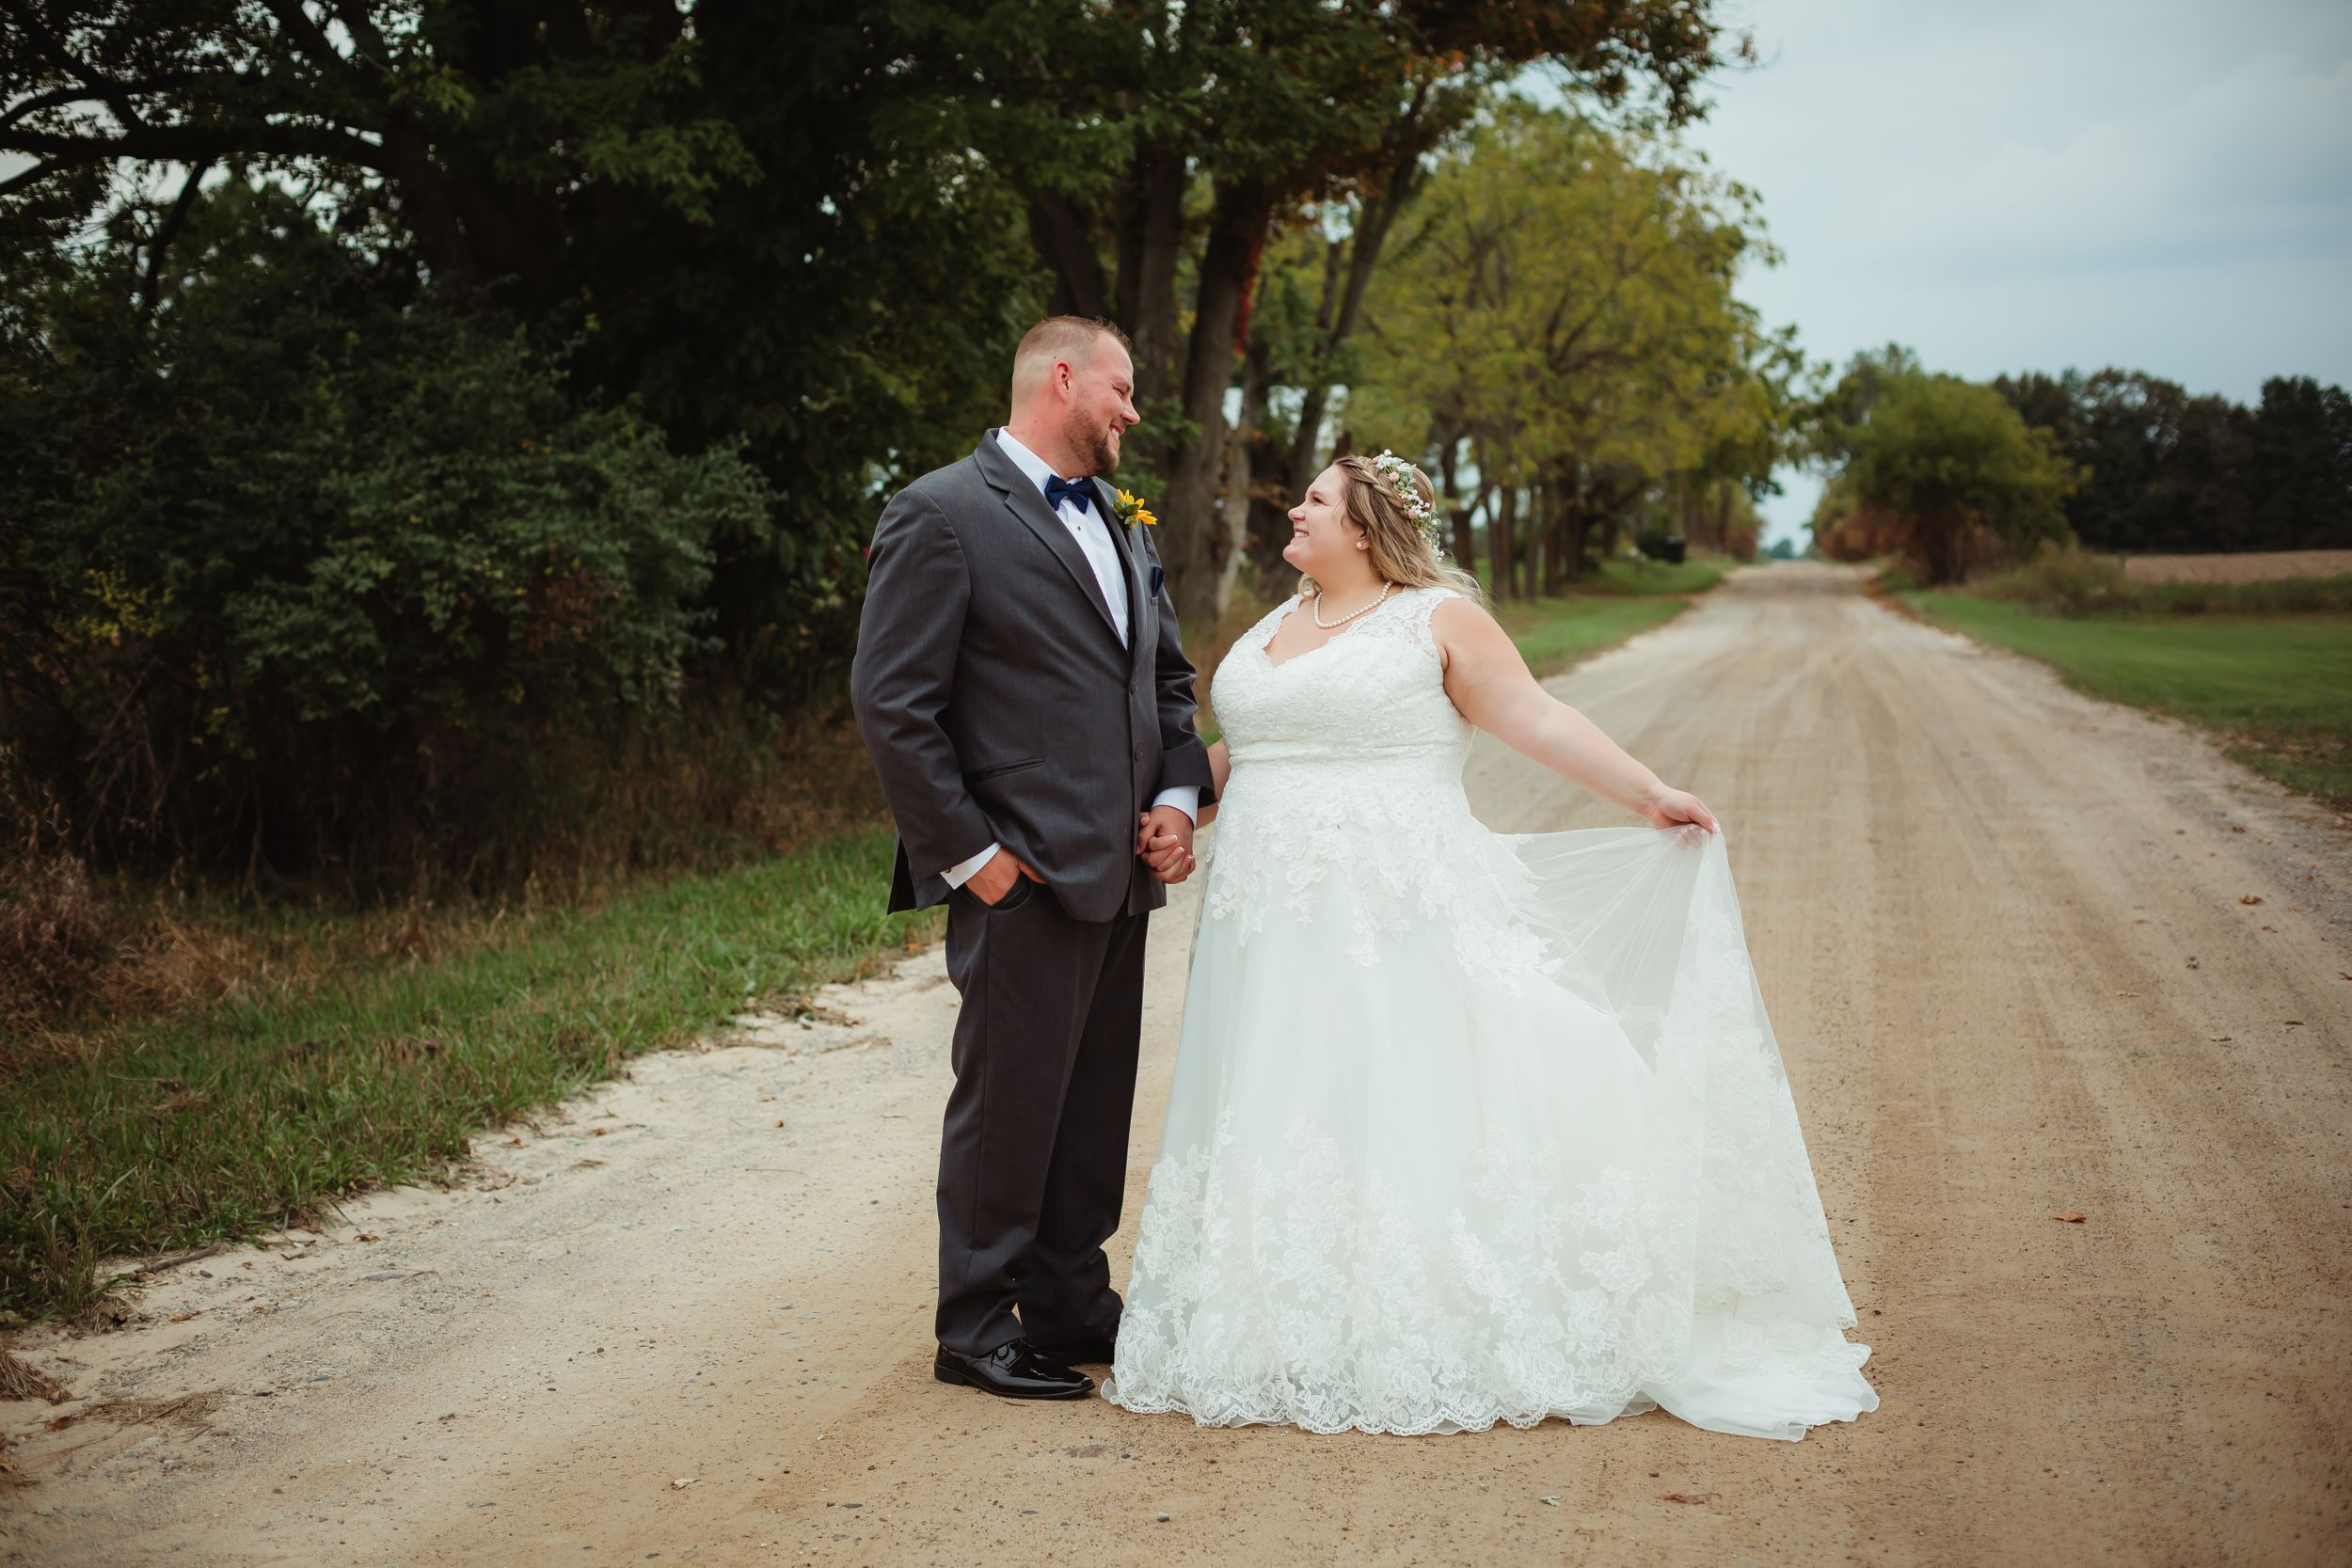 Bride and groom standing on a dirt road holding hands. The bride holds her dress out.